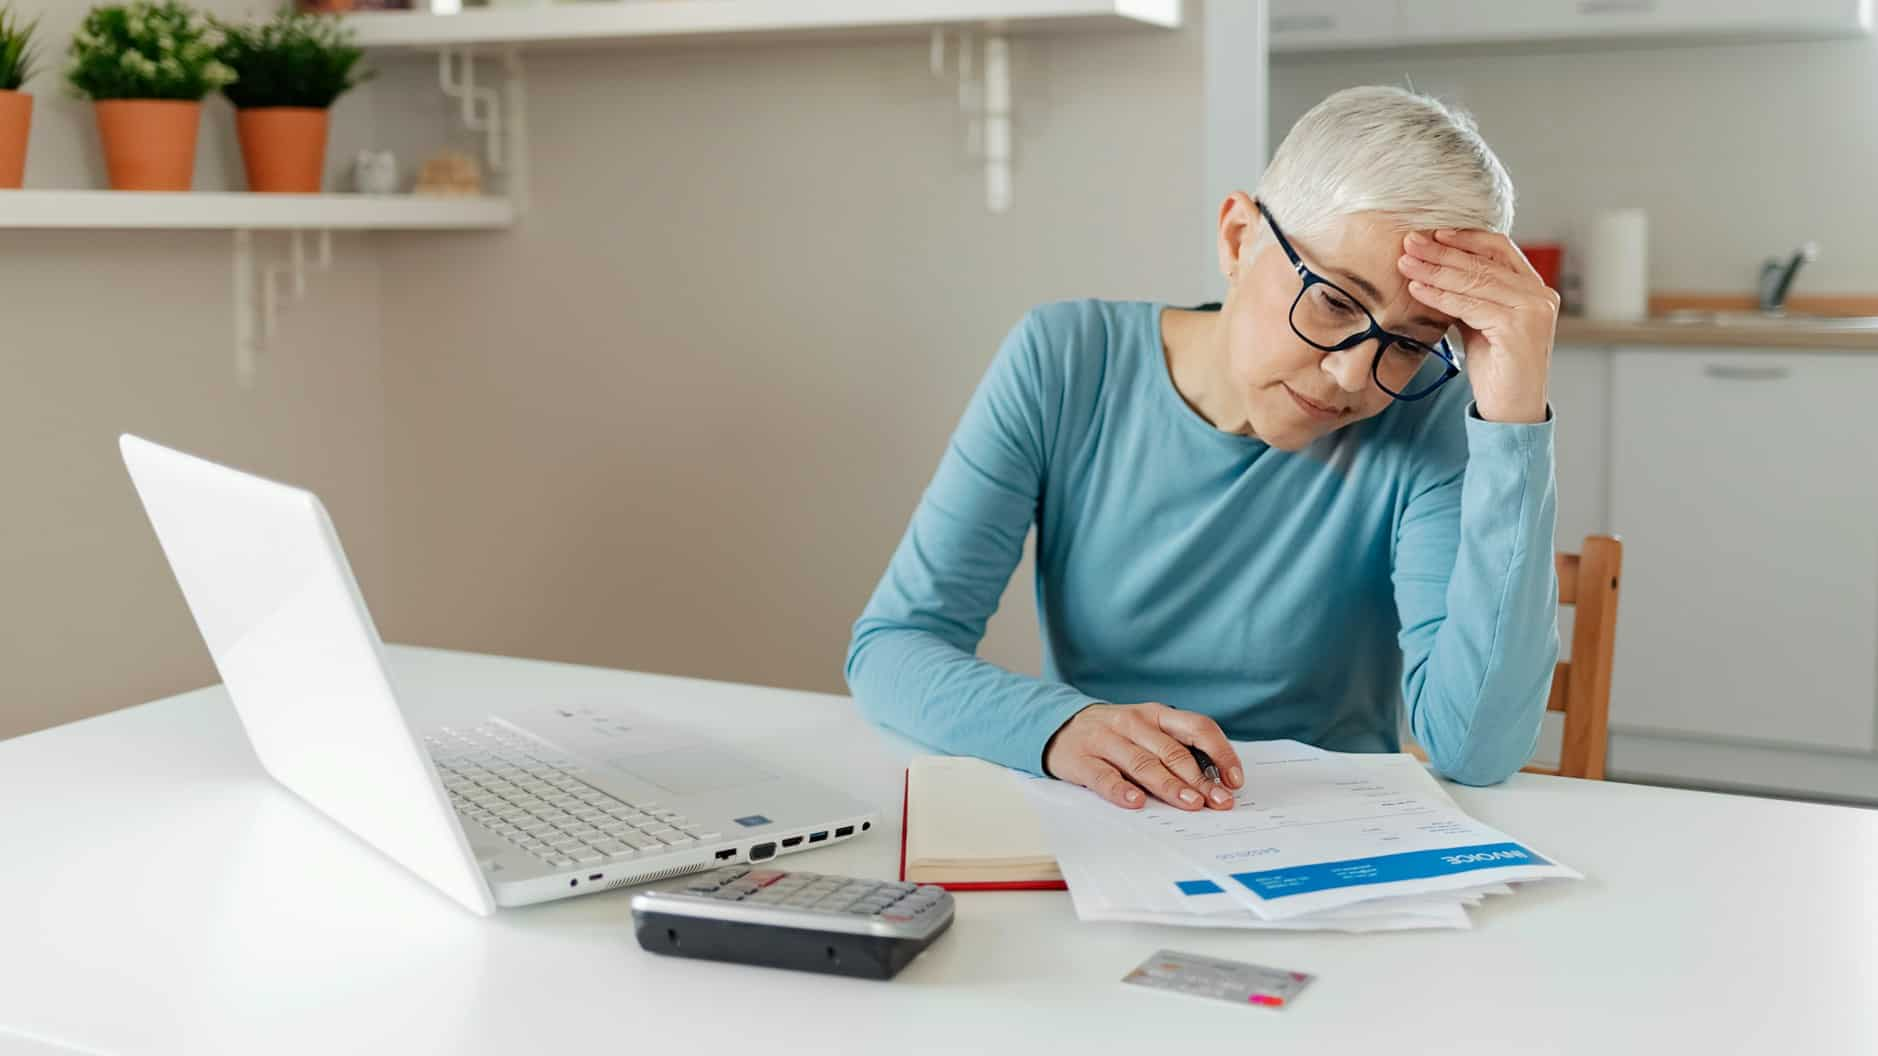 Woman working on laptop making financial decisions